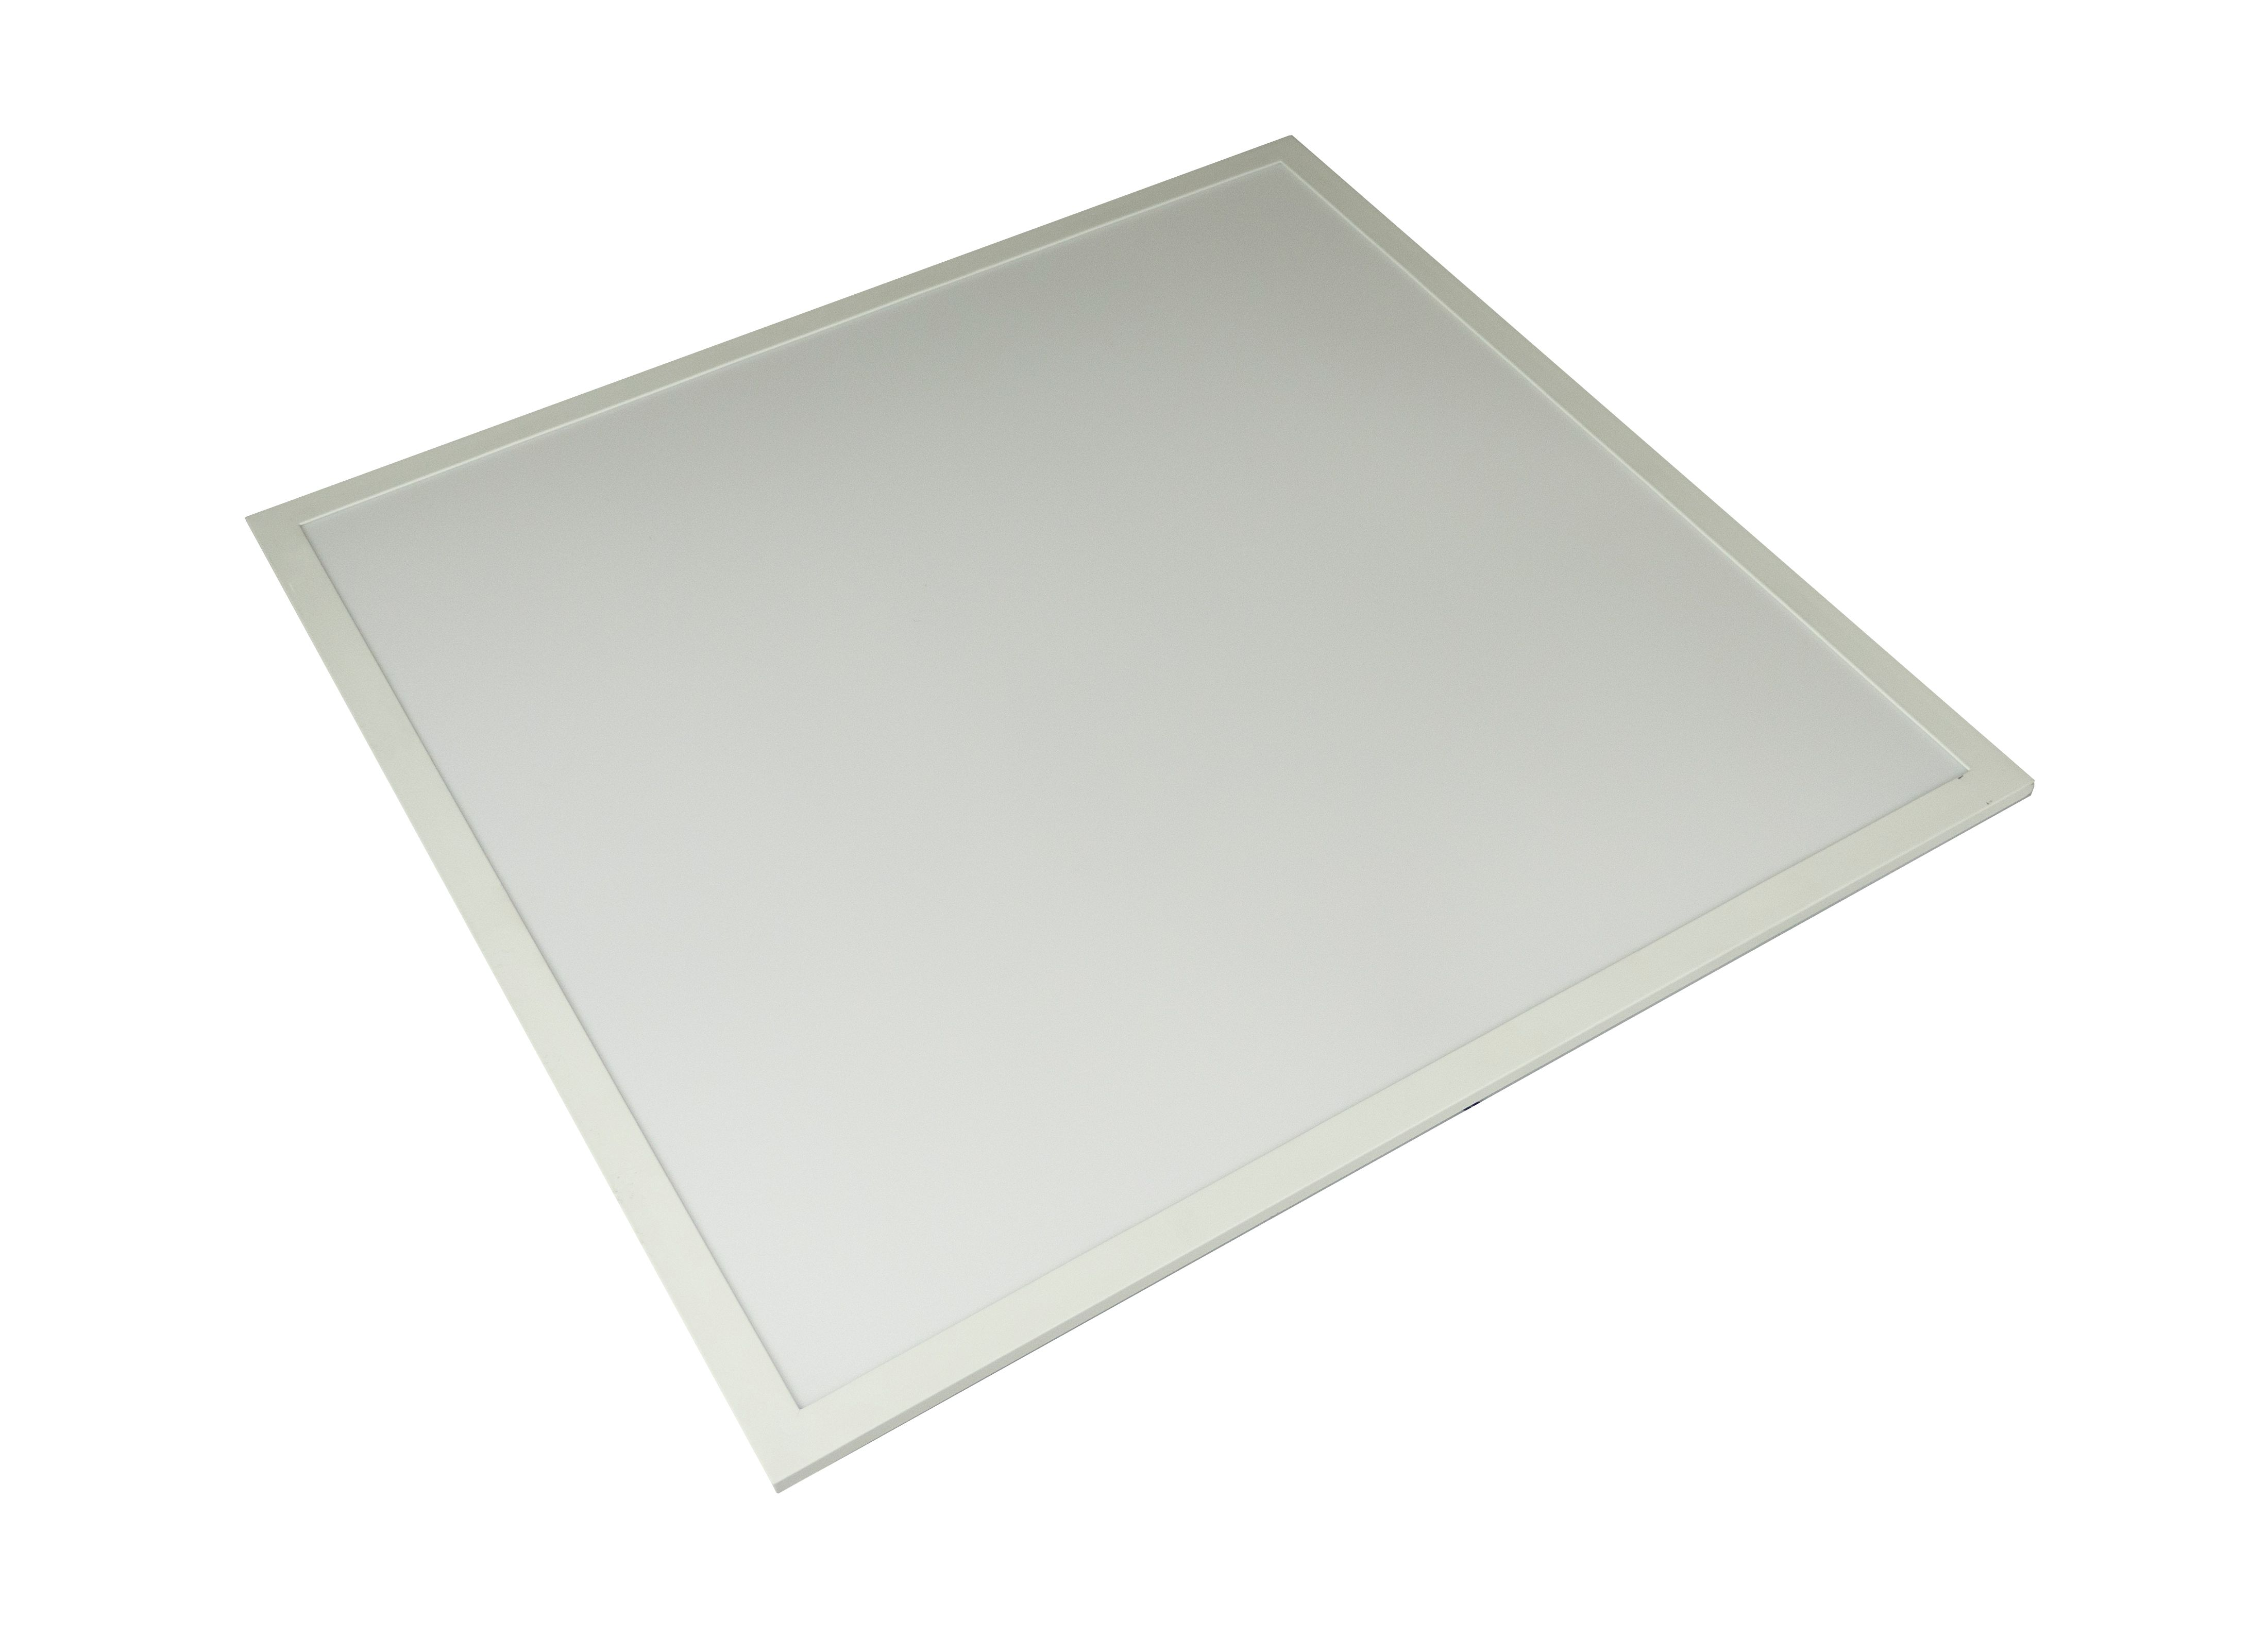 Own Brand BACKLIT PANEL   Latest Product